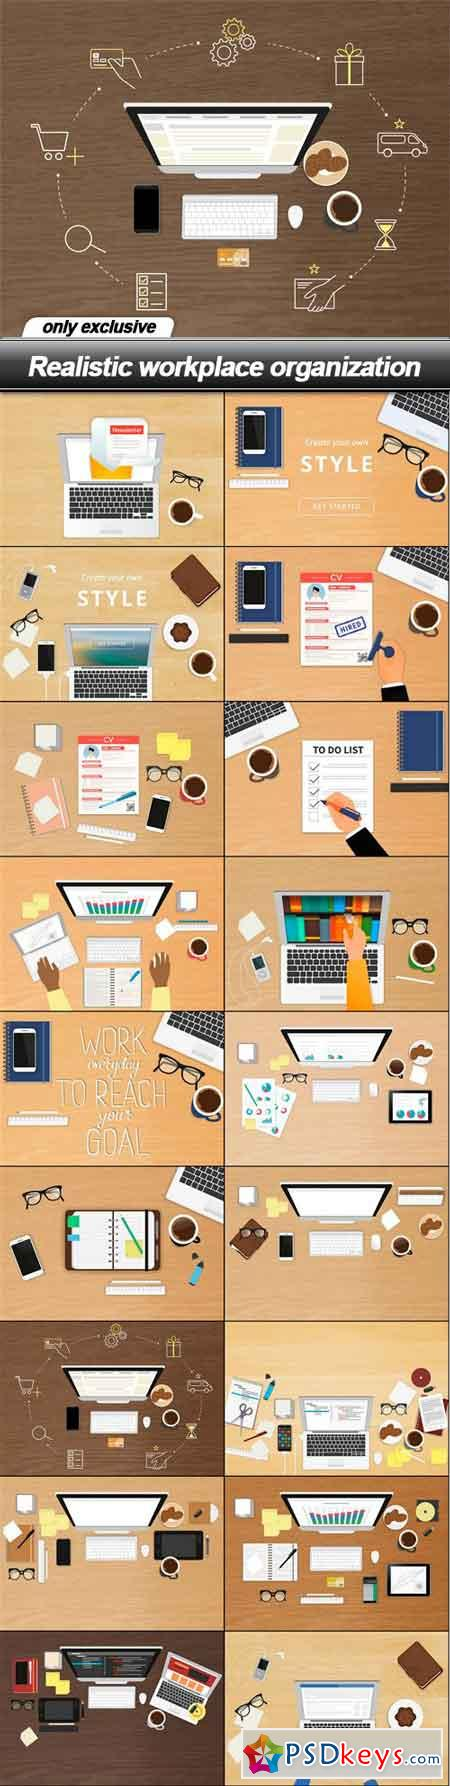 Realistic workplace organization - 18 EPS